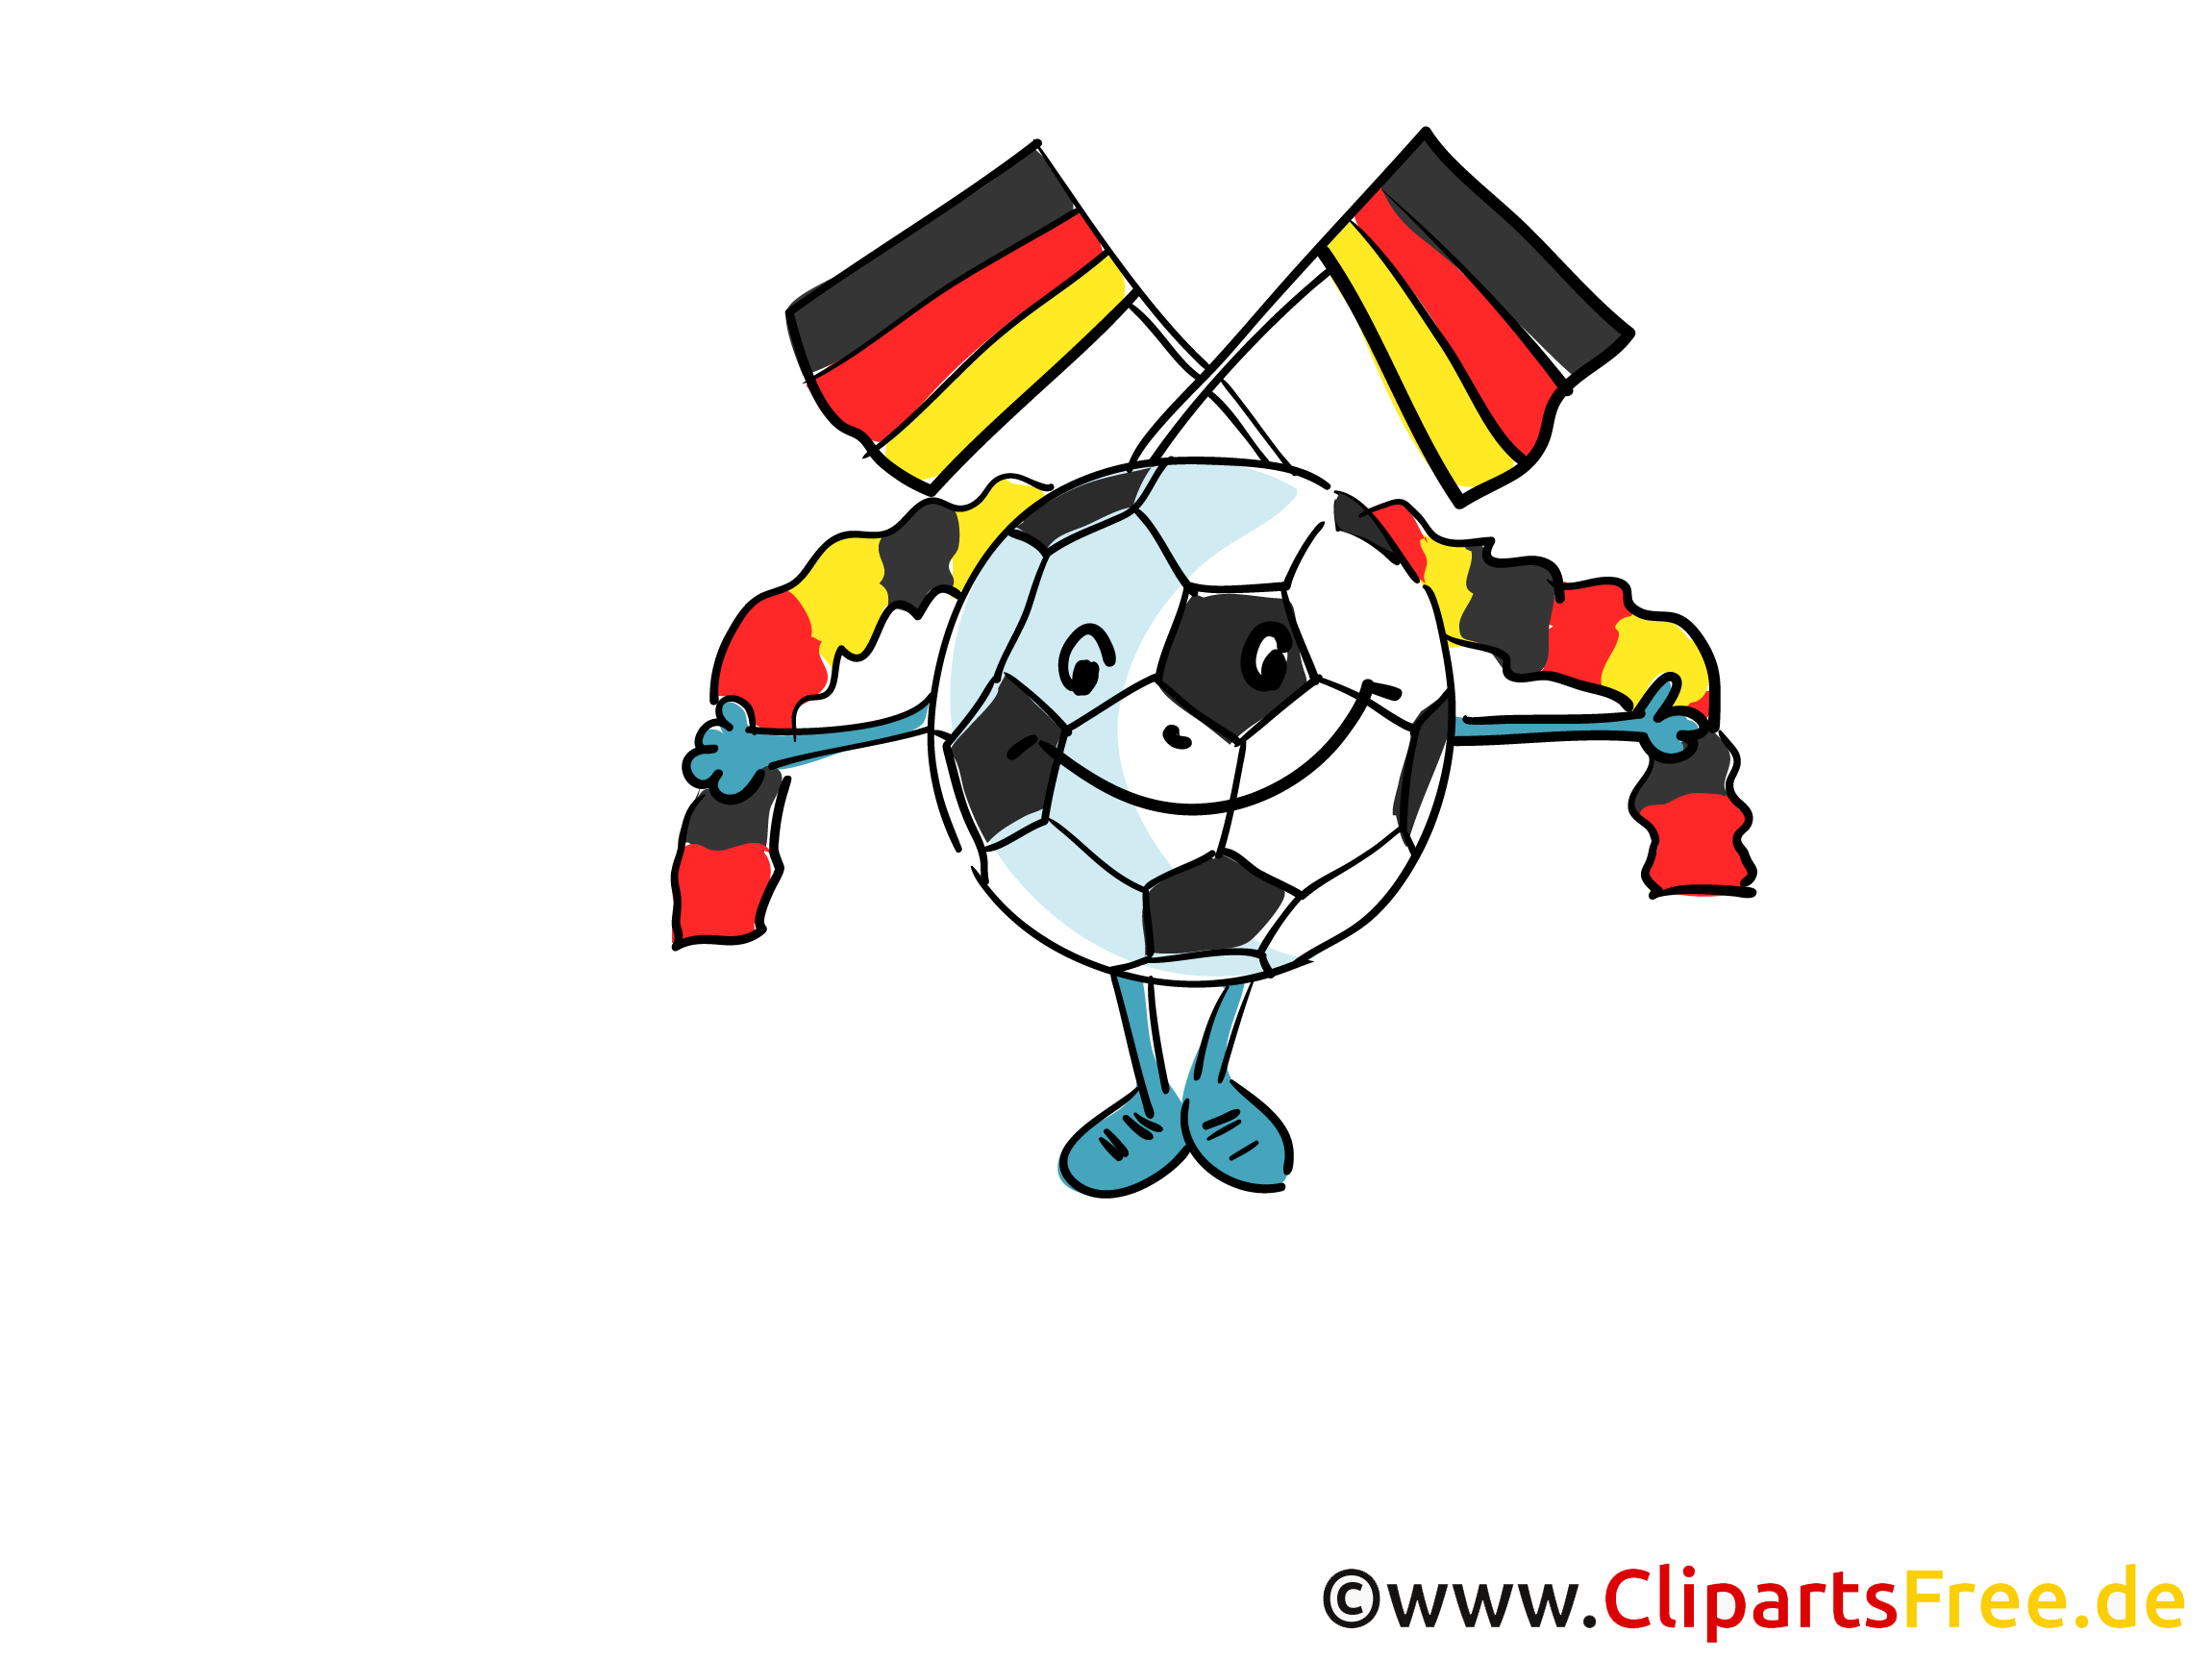 Soccer Cliparts free